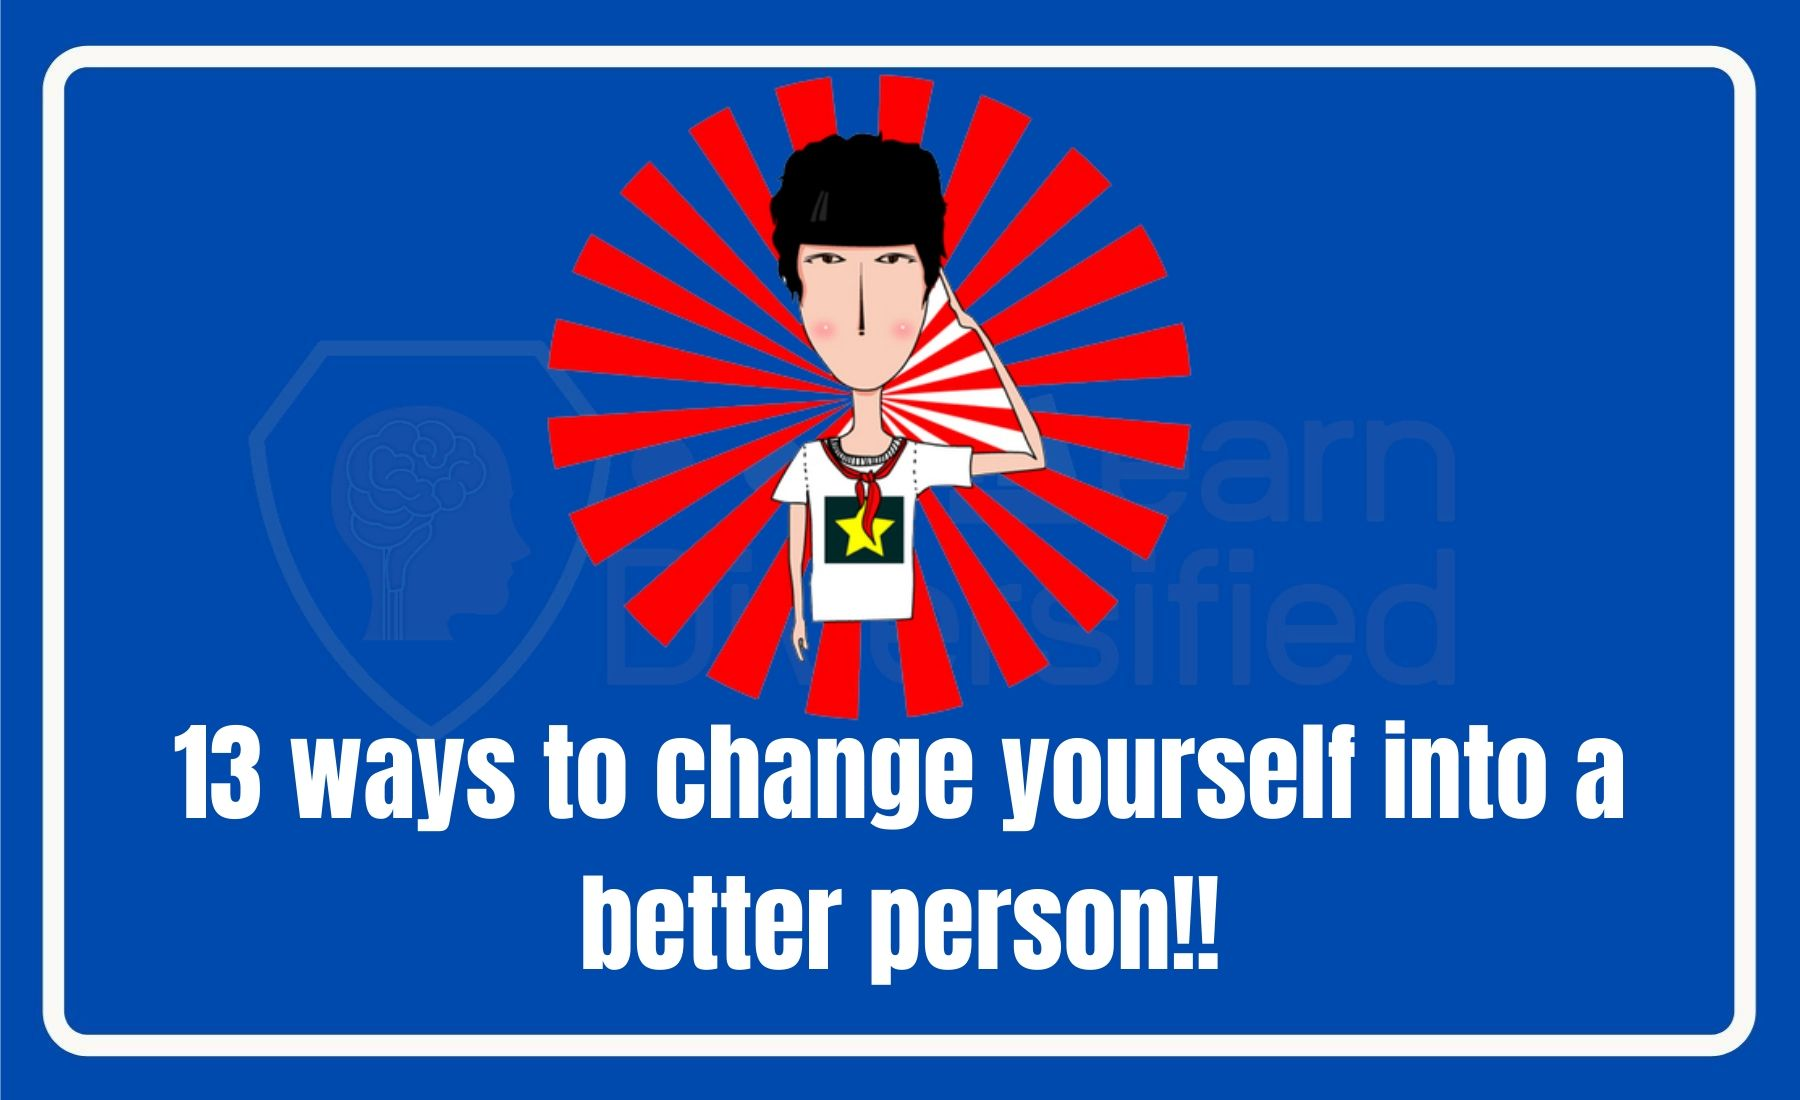 13 ways to chnage yourself into a better person